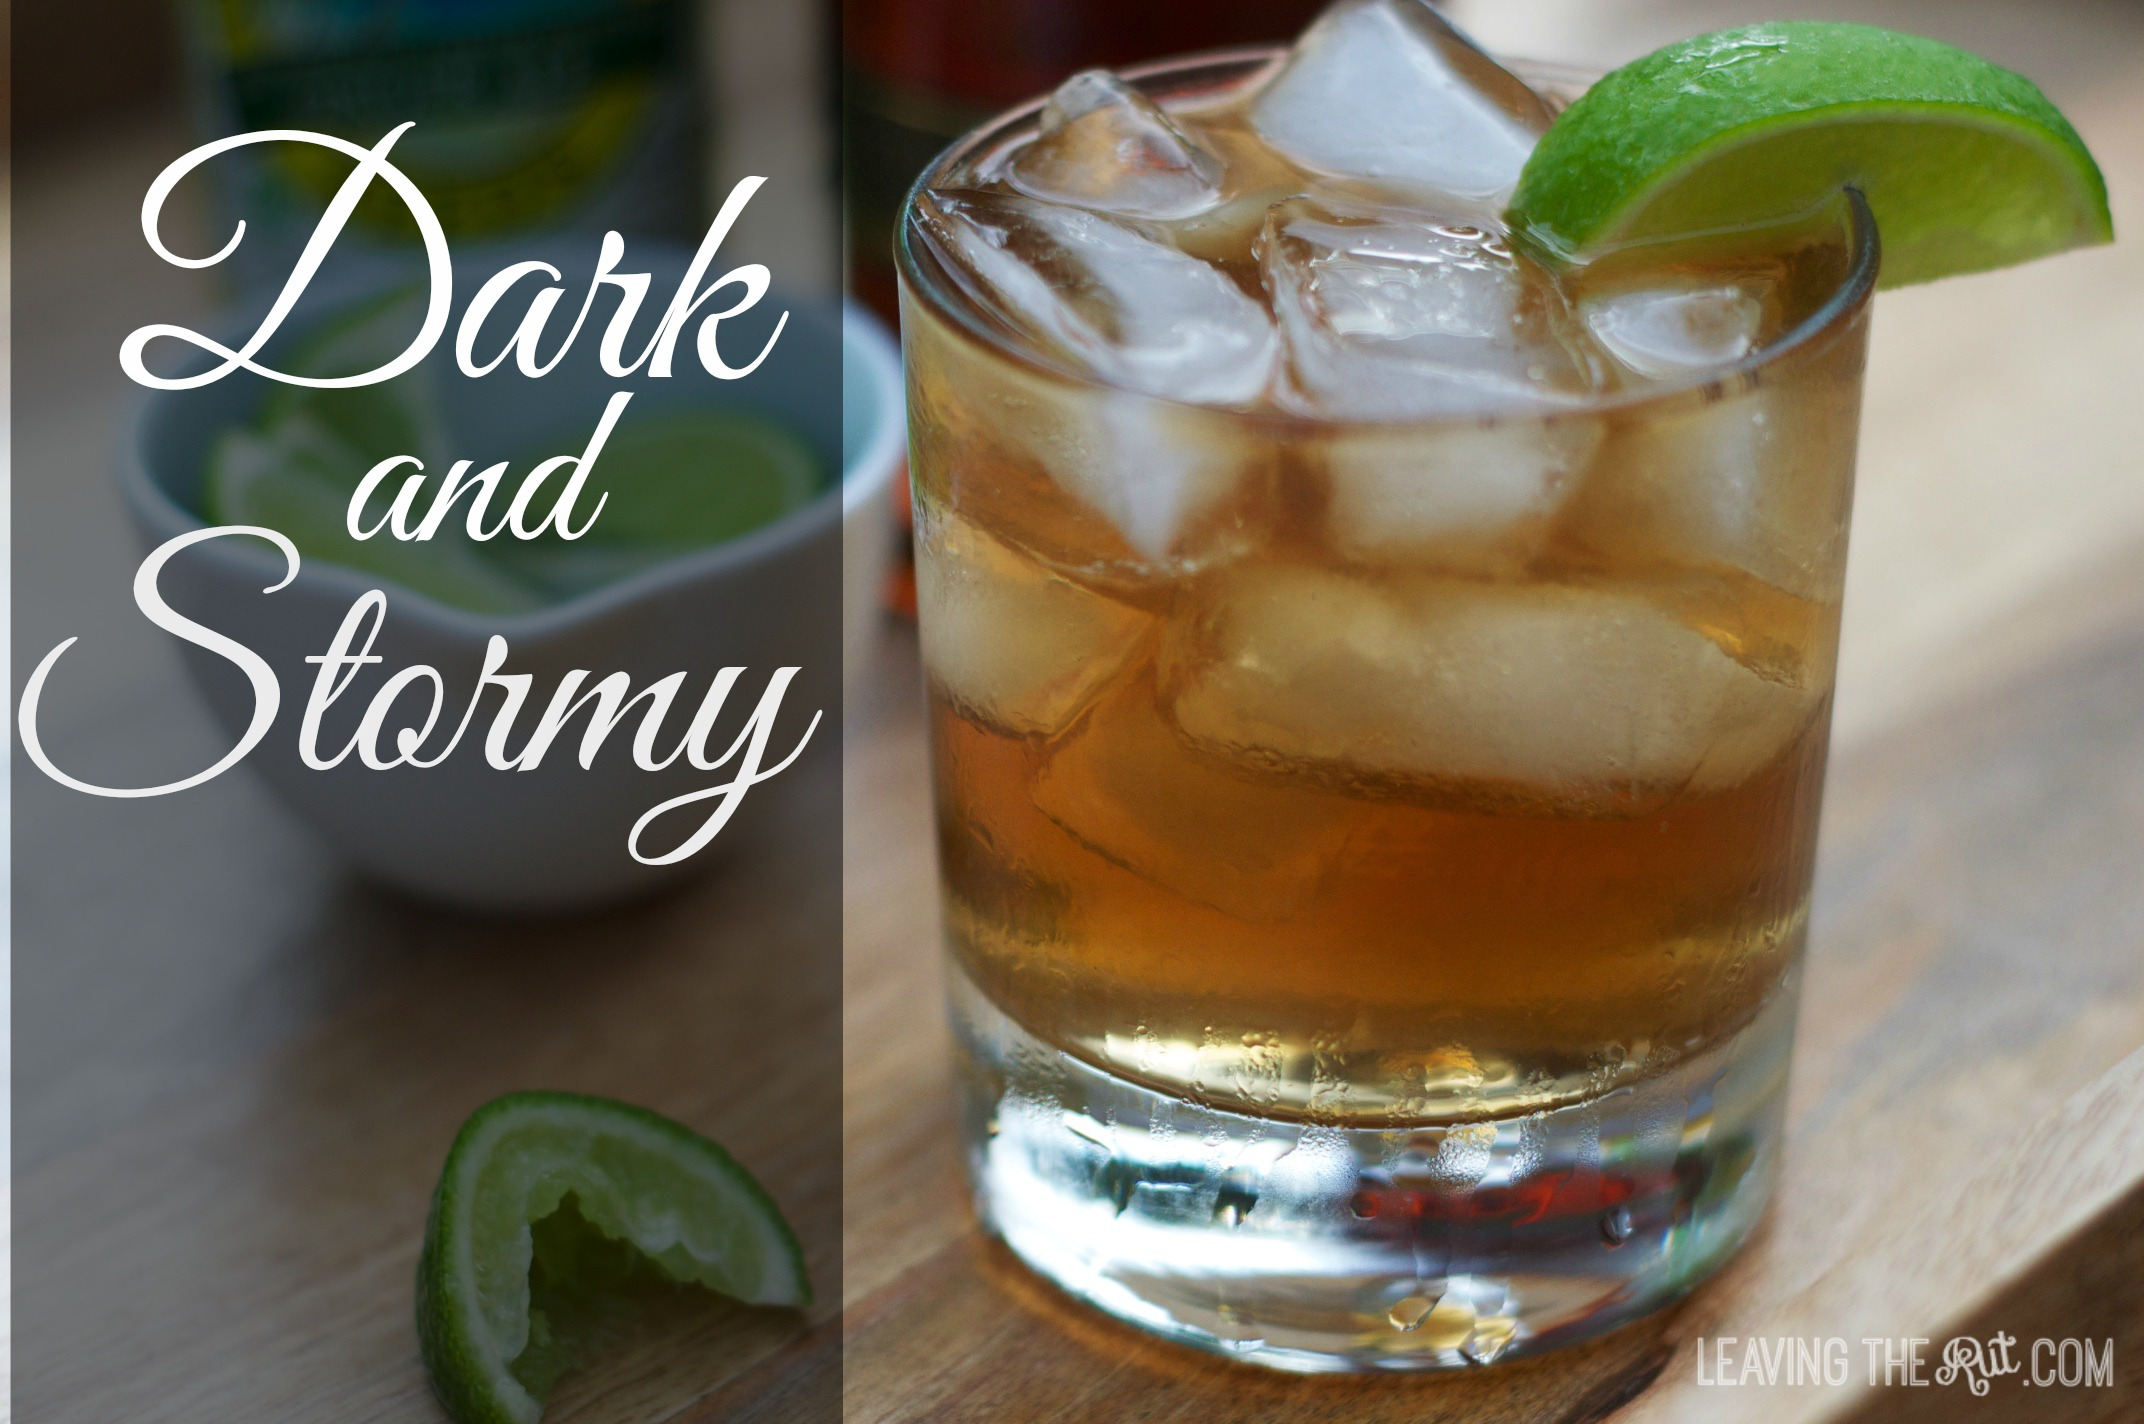 Dark and Stormy at the Friday Afternoon Happy Hour